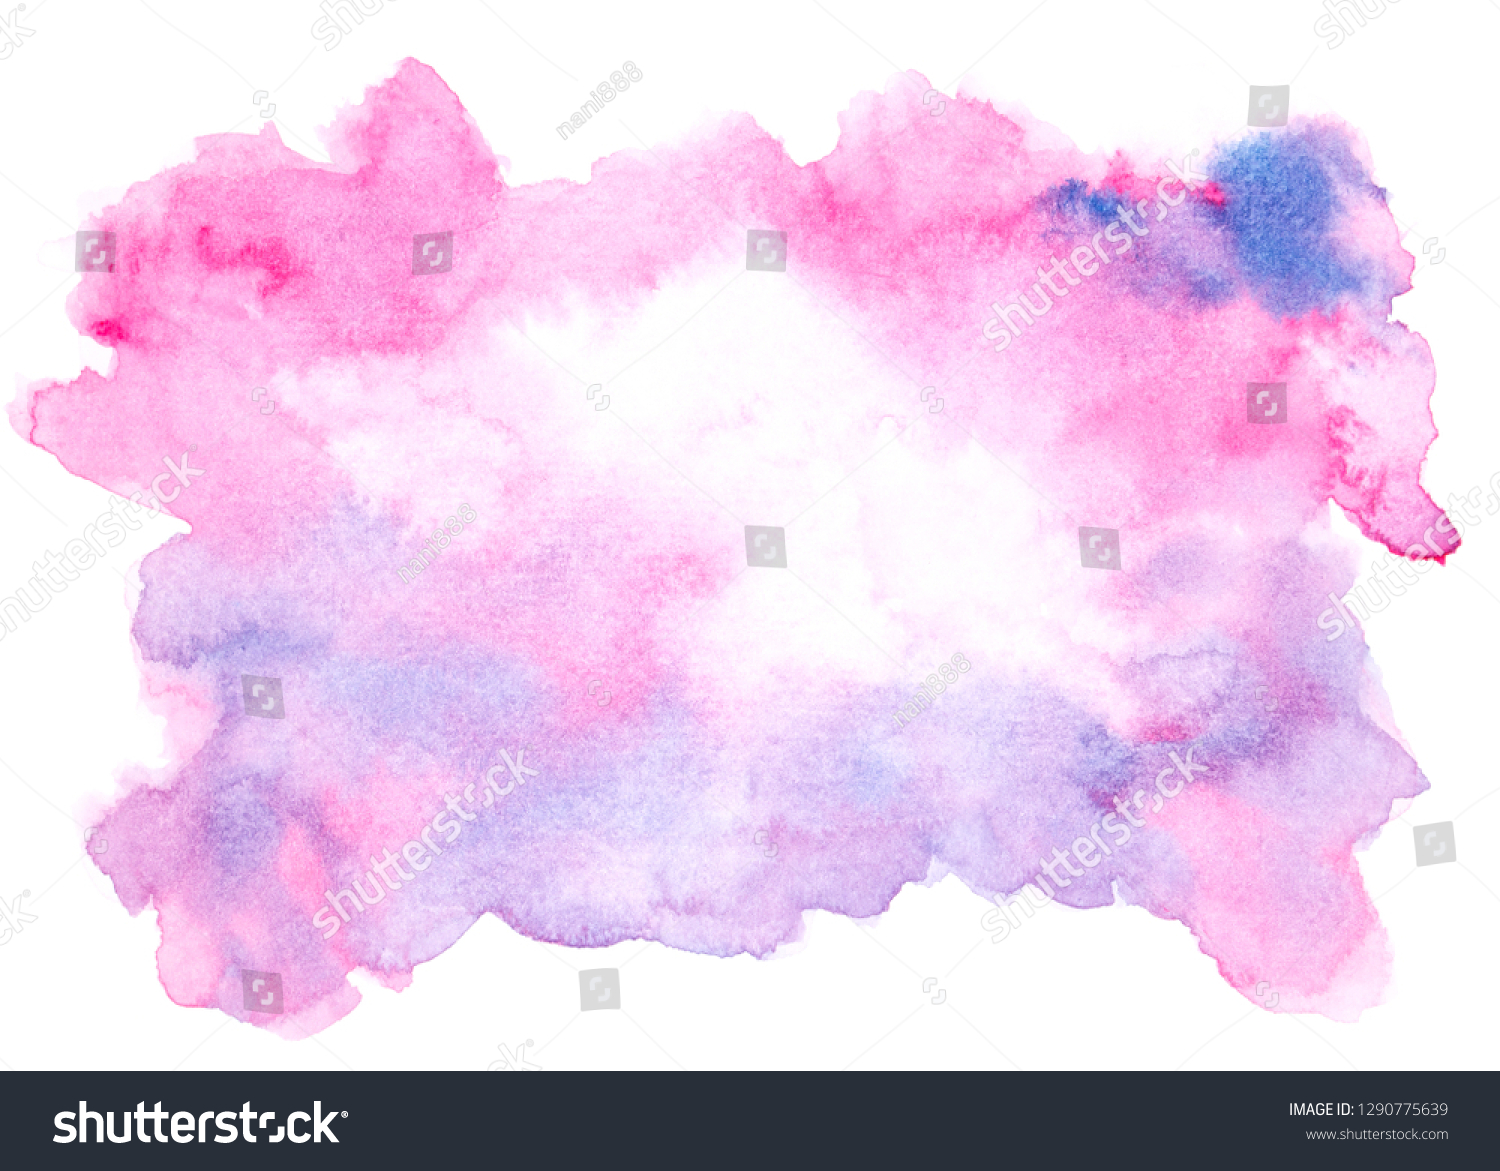 Purple Watercolor Painting Ideas Colorful Shades Stock Illustration 1290775639